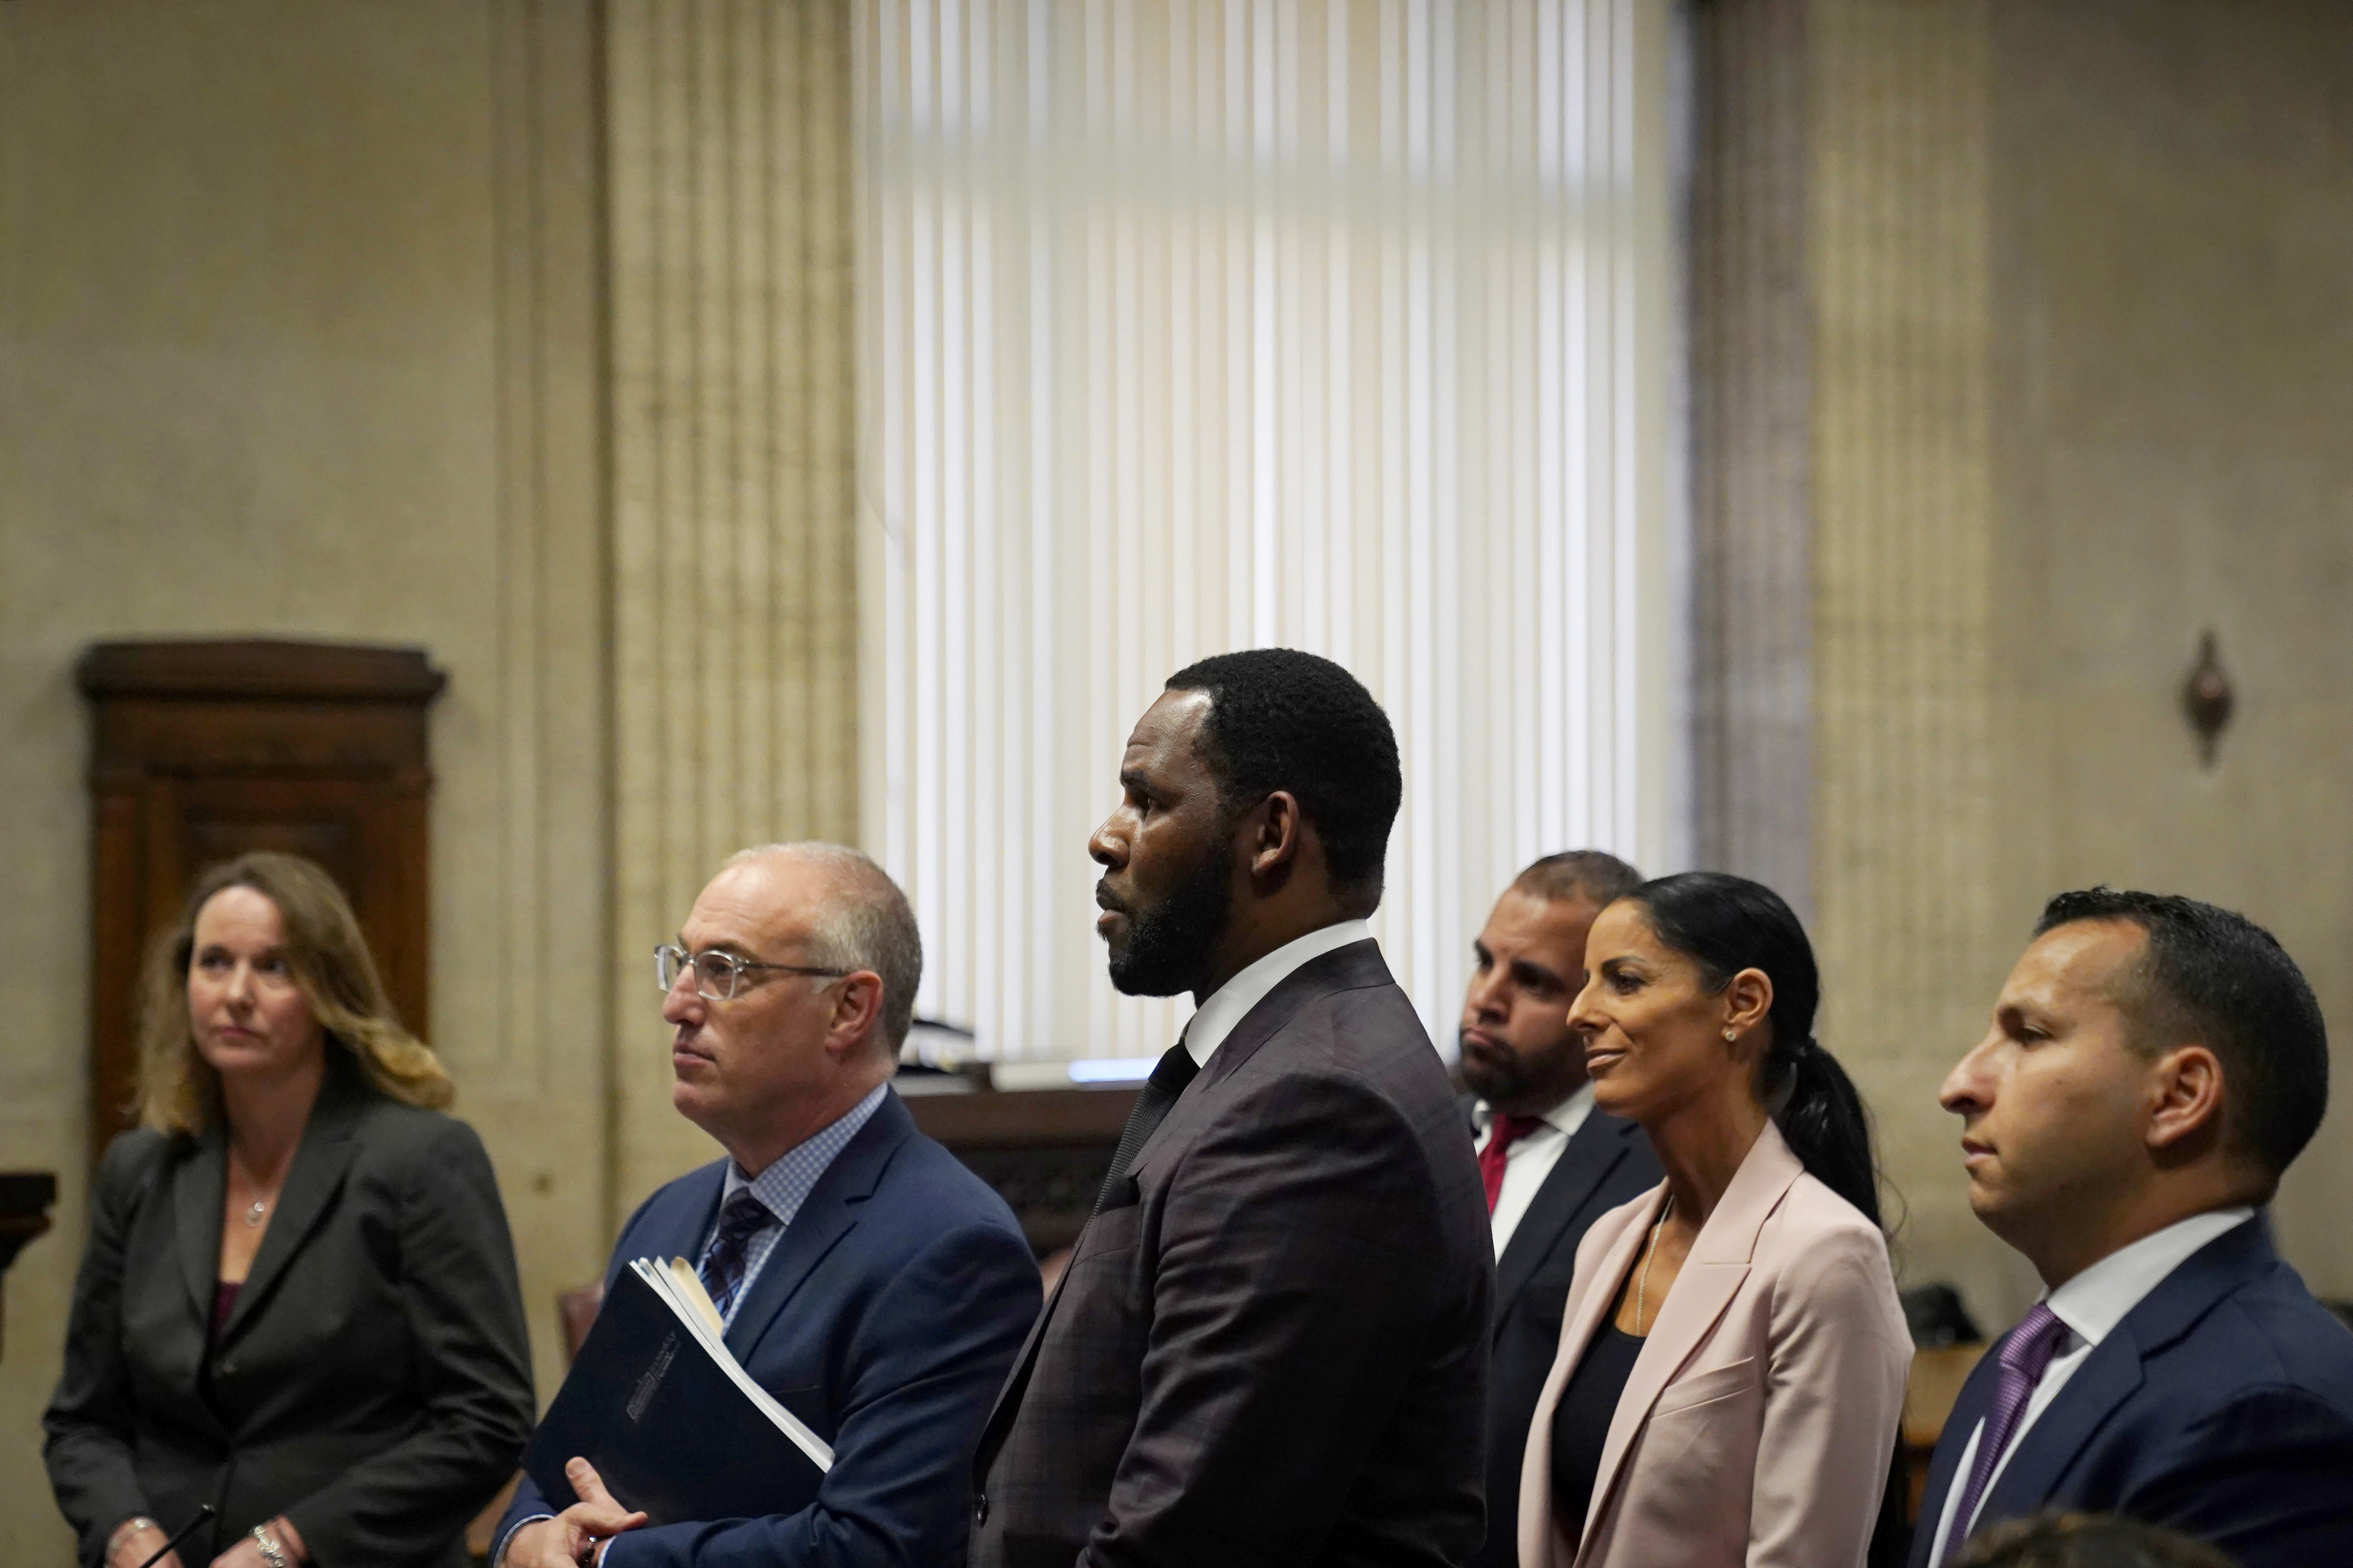 R. Kelly appears for a hearing at Leighton Criminal Court Building in Chicago, Illinois, U.S., June 26, 2019. E. Jason Wambsgans/Chicago Tribune/Pool via REUTERS - RC166CFDAD20